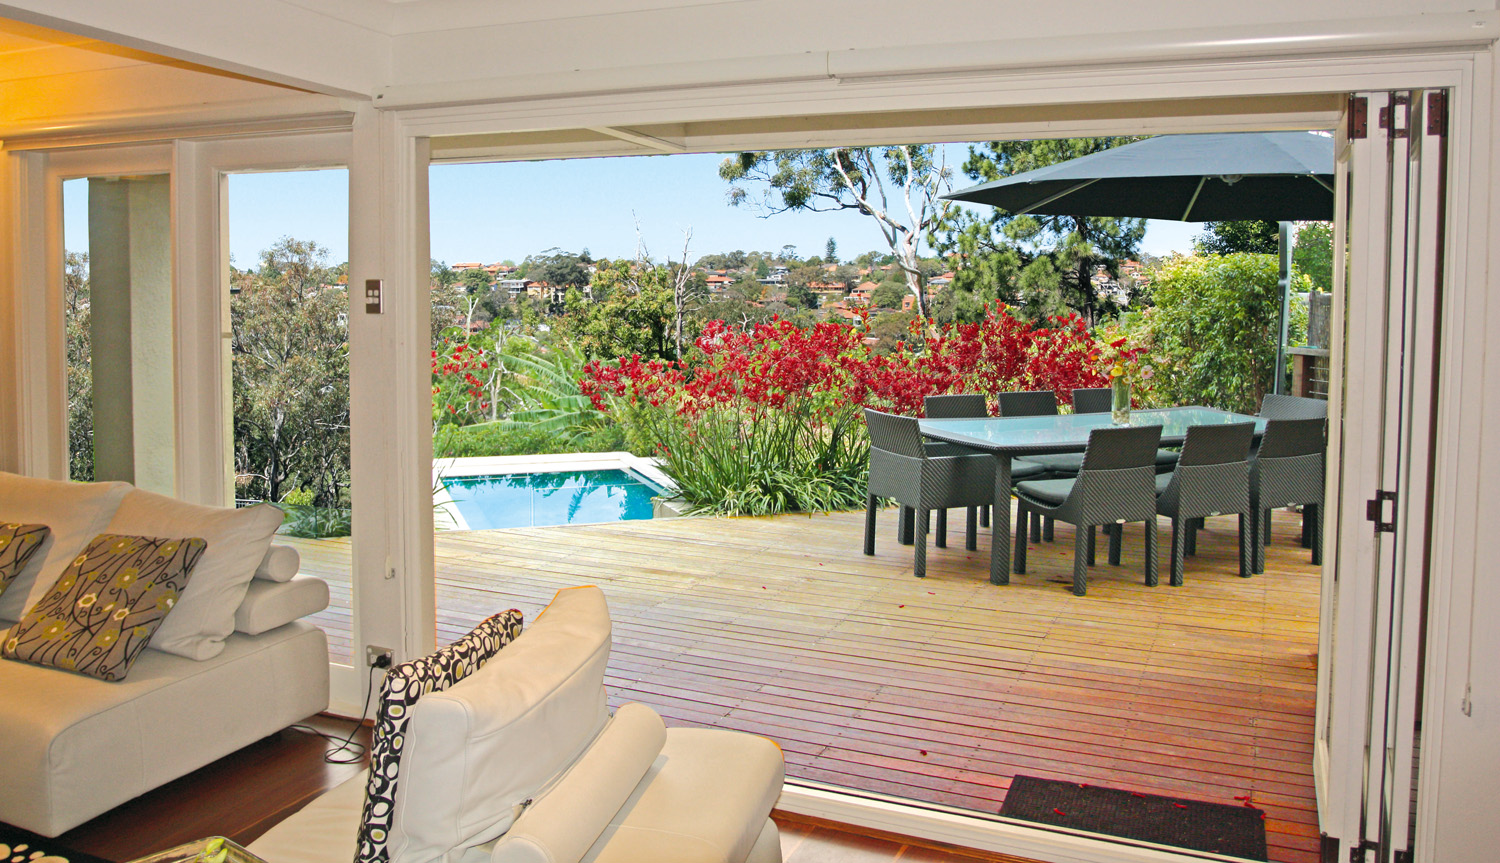 PSS024_Cabanas Feature_attached outdoor room with a view of the pool